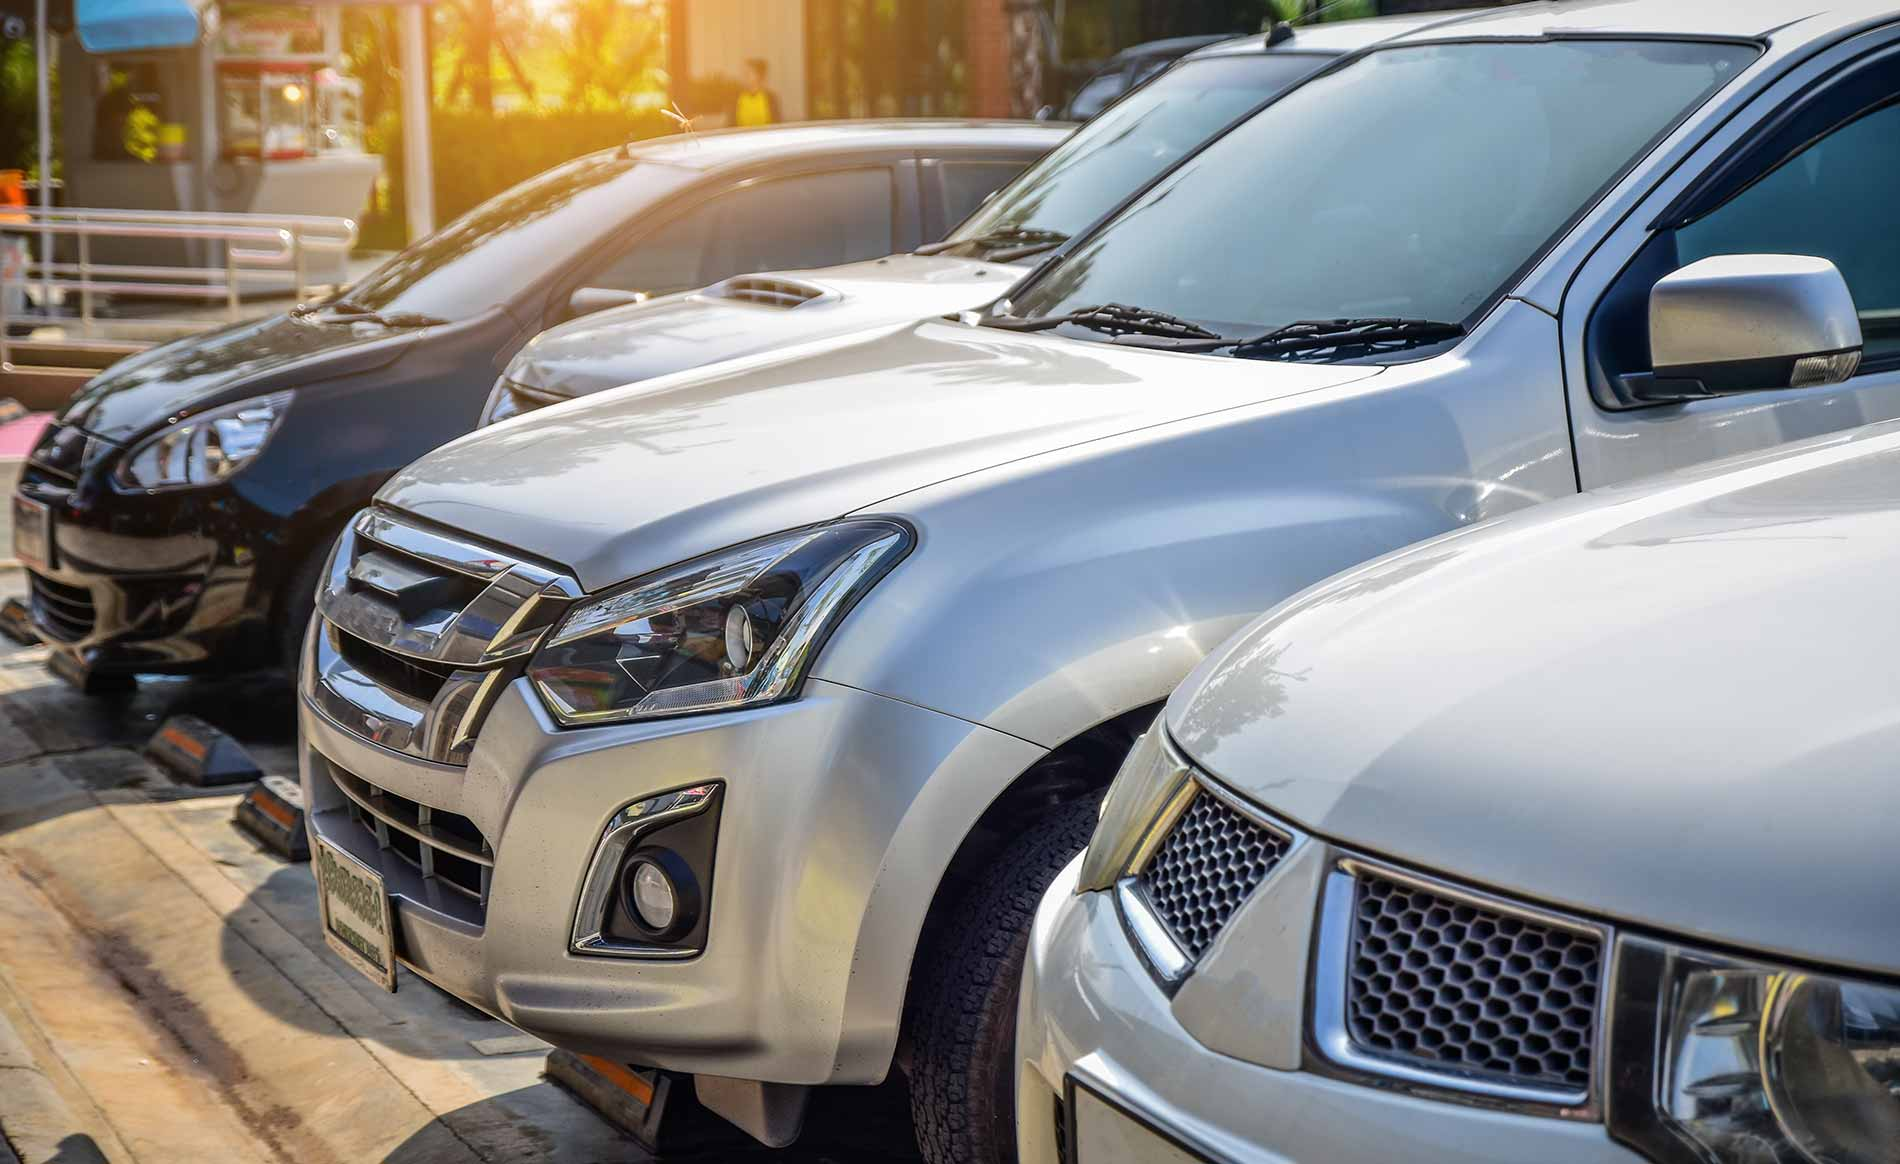 How First-Time Car Buyers Can Find the Right Car